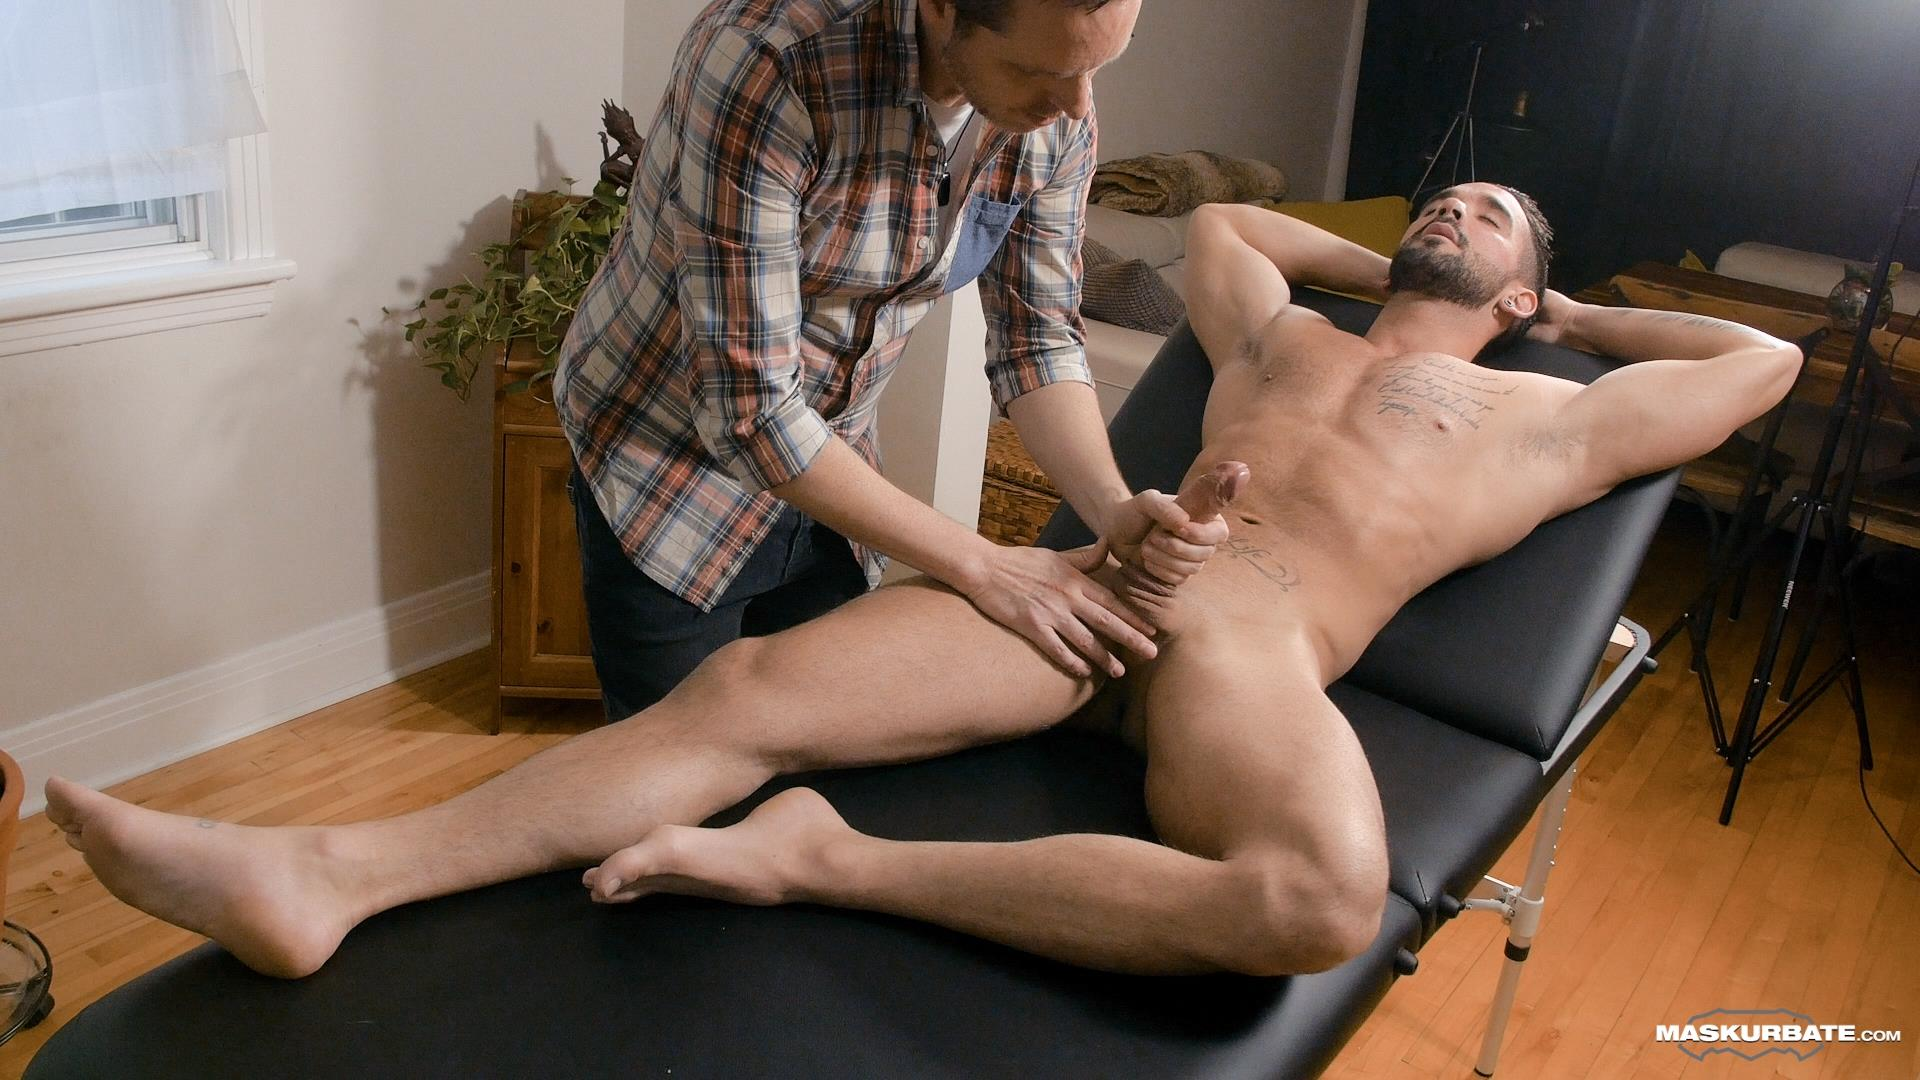 Maskurbate-Zack-Lemec-Gay-Massage-With-Happy-Ending-07 Zack Lemec Get's His First Gay Massage With A Happy Ending